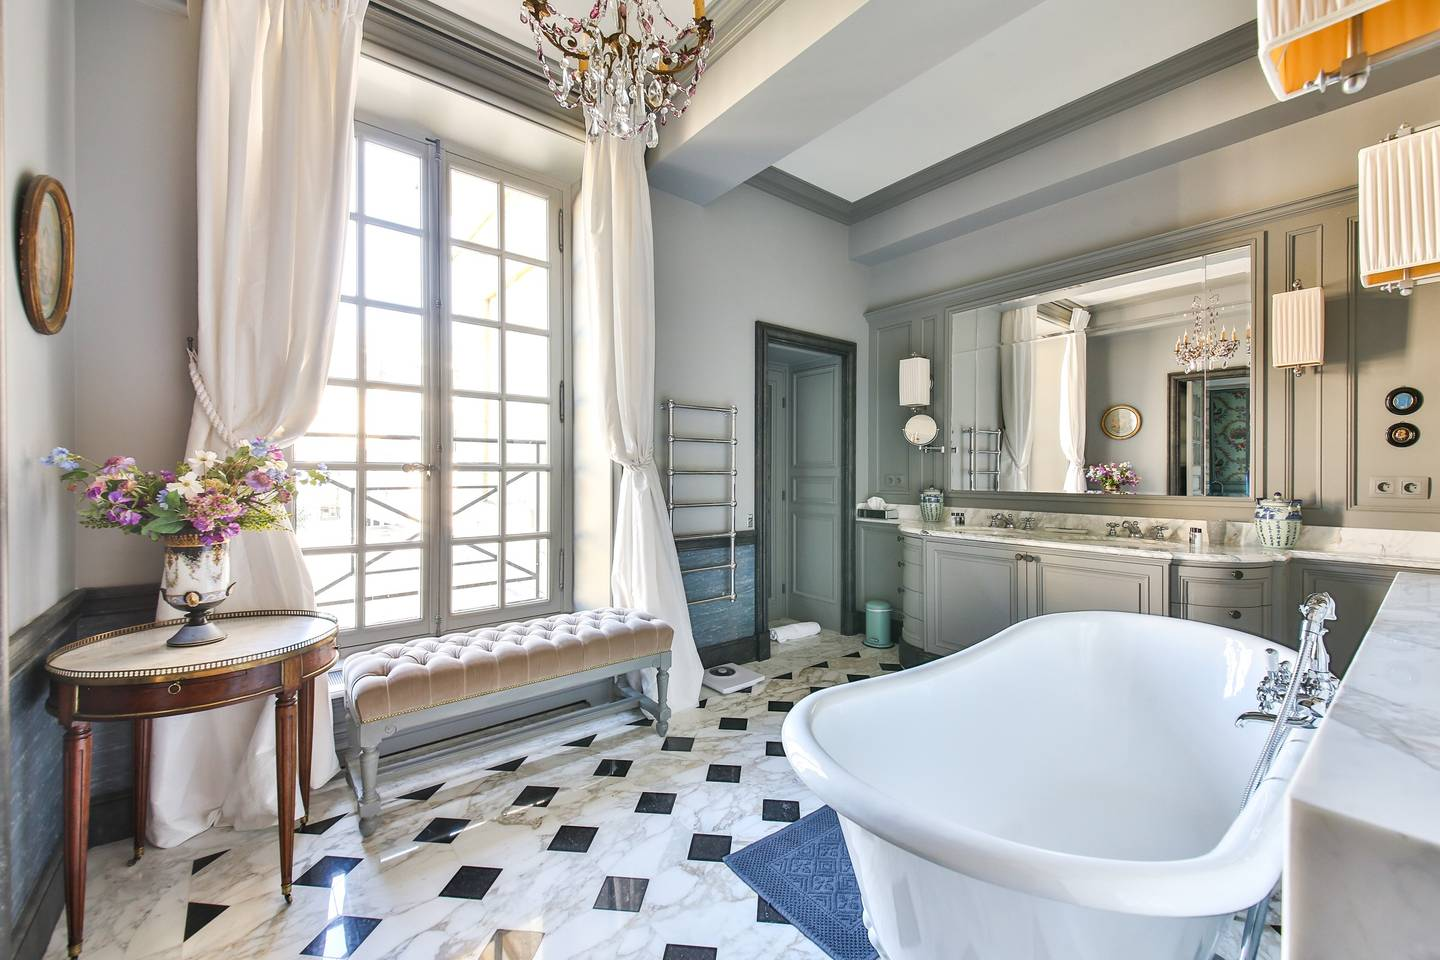 a bathroom with a stand alone tub in France's capital city!